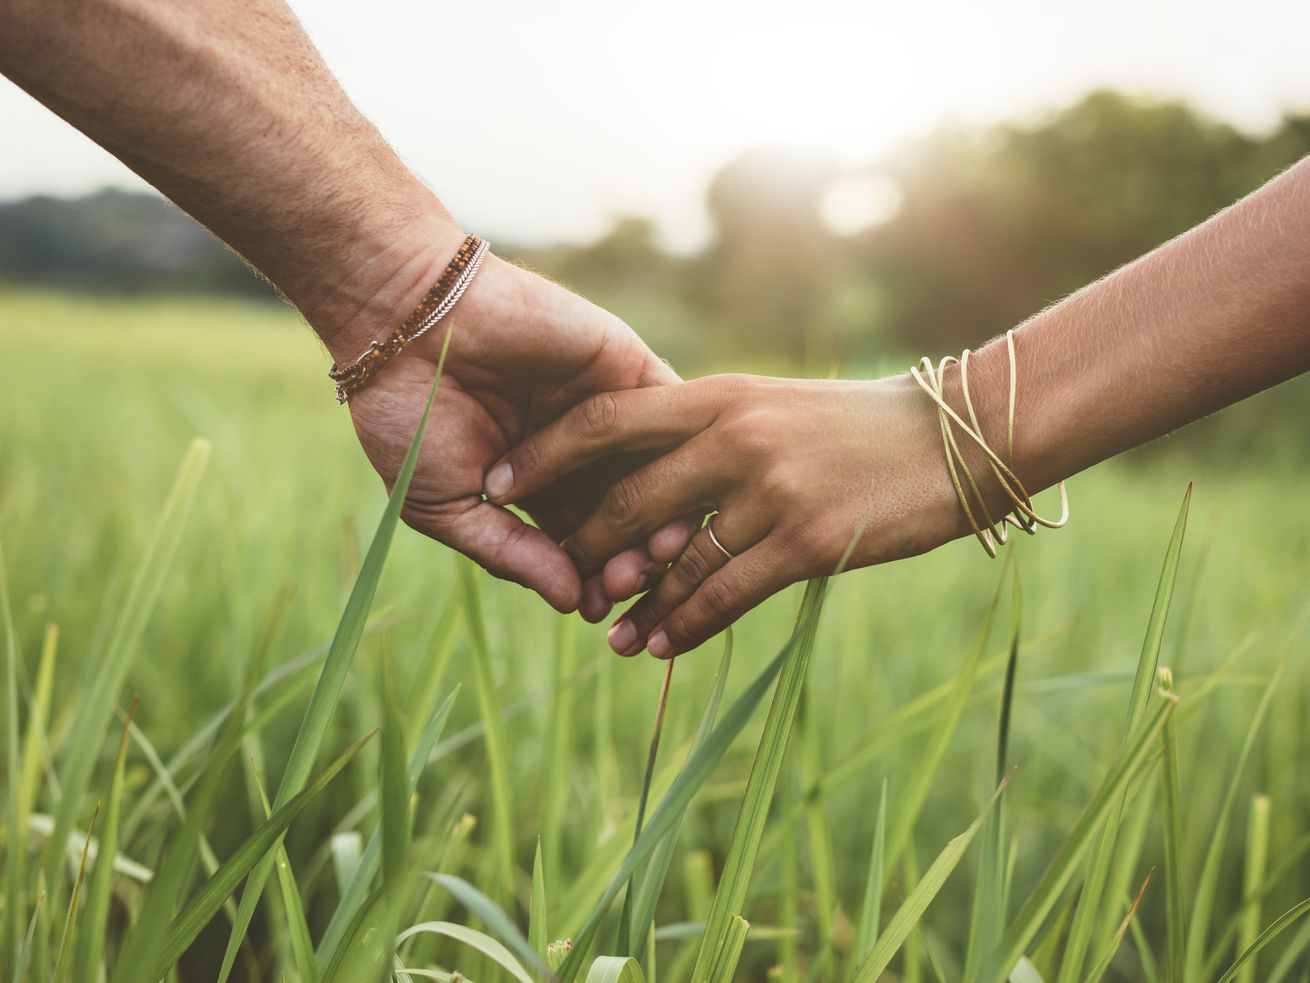 A shot of hands holding one another in a field.